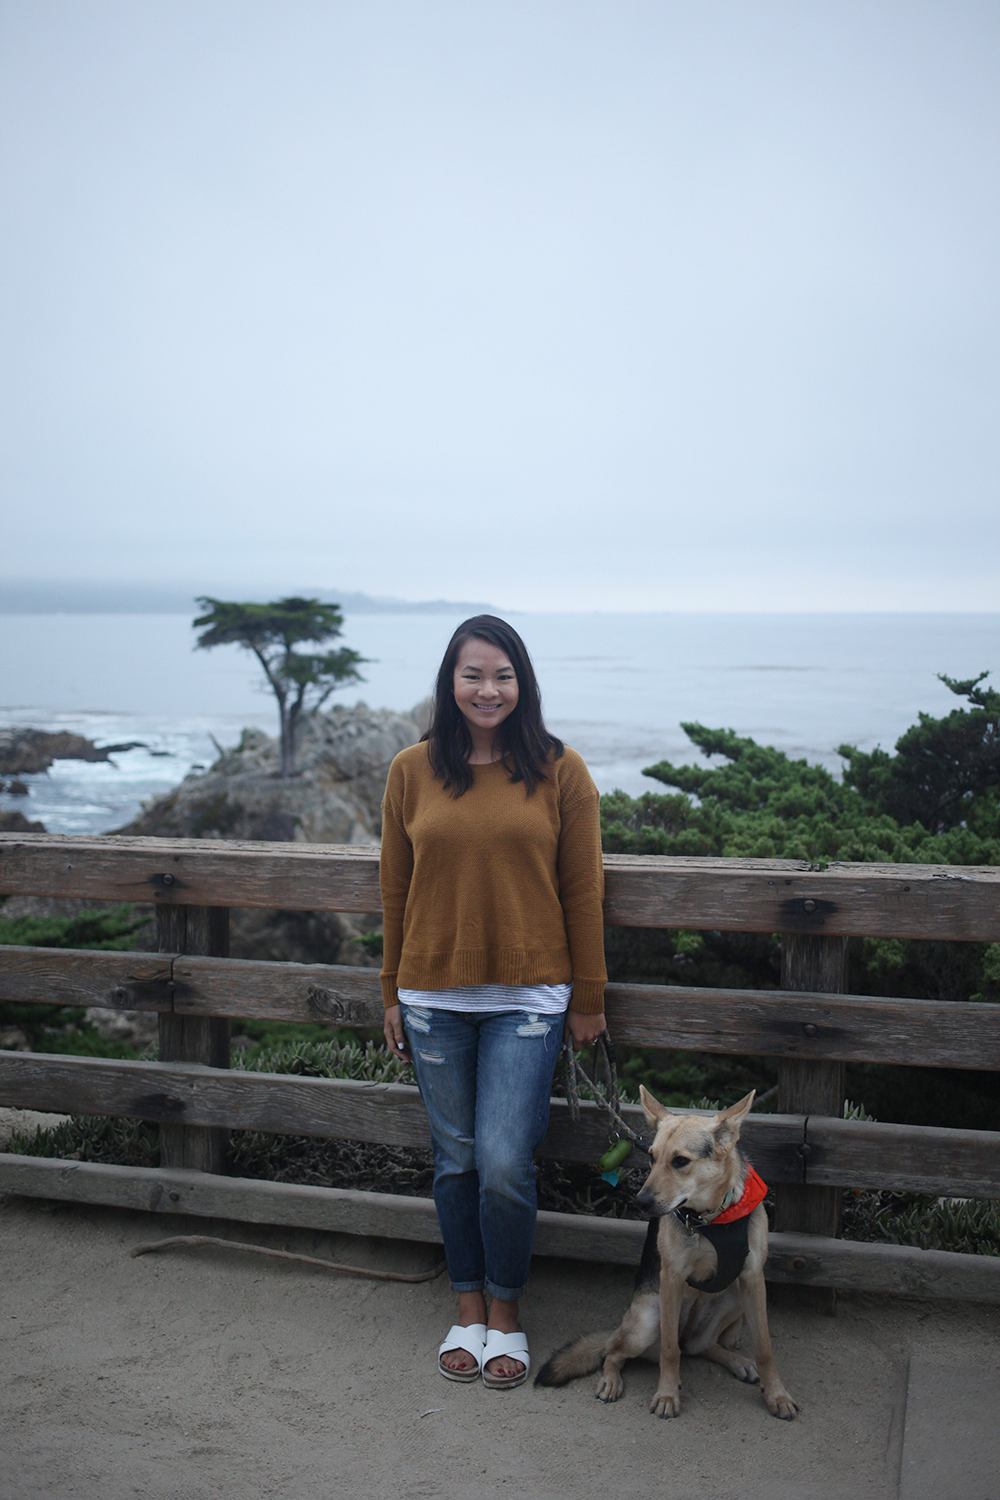 IMGJ for Jamie Blog | Carmel by the Sea_5643